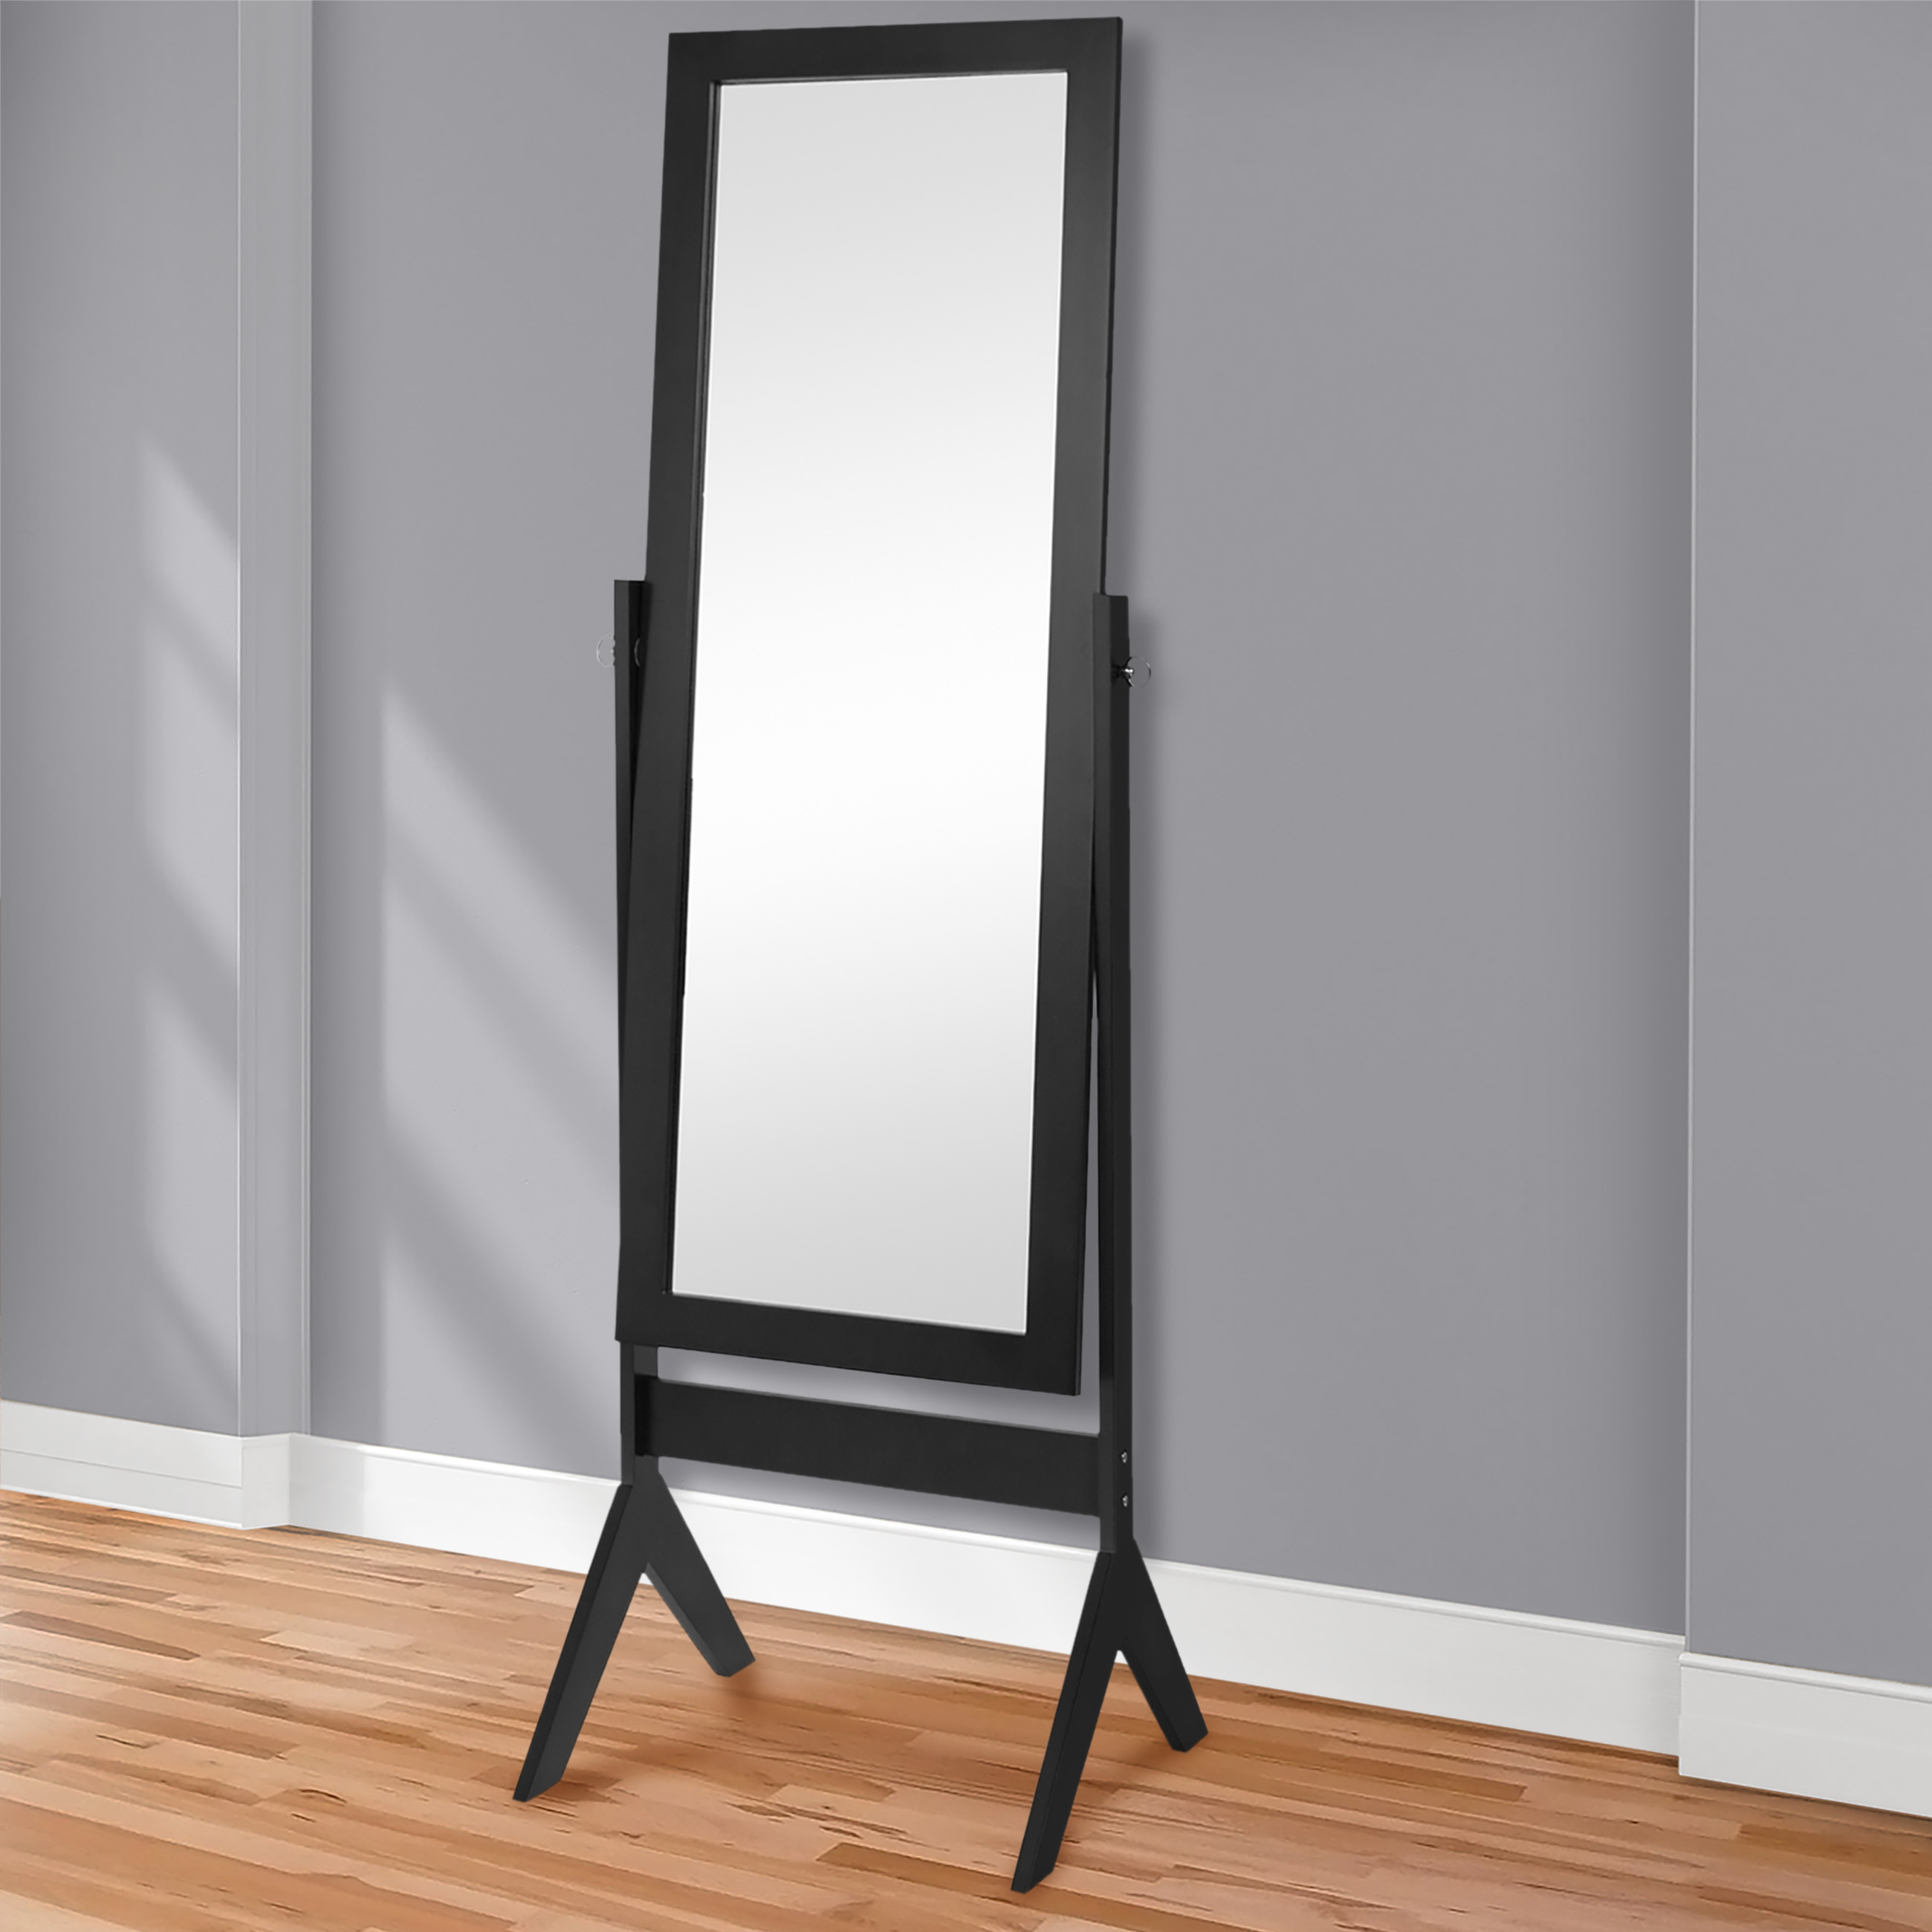 Best Choice Products Cheval Floor Mirror Bedroom Home Furniture- Black by